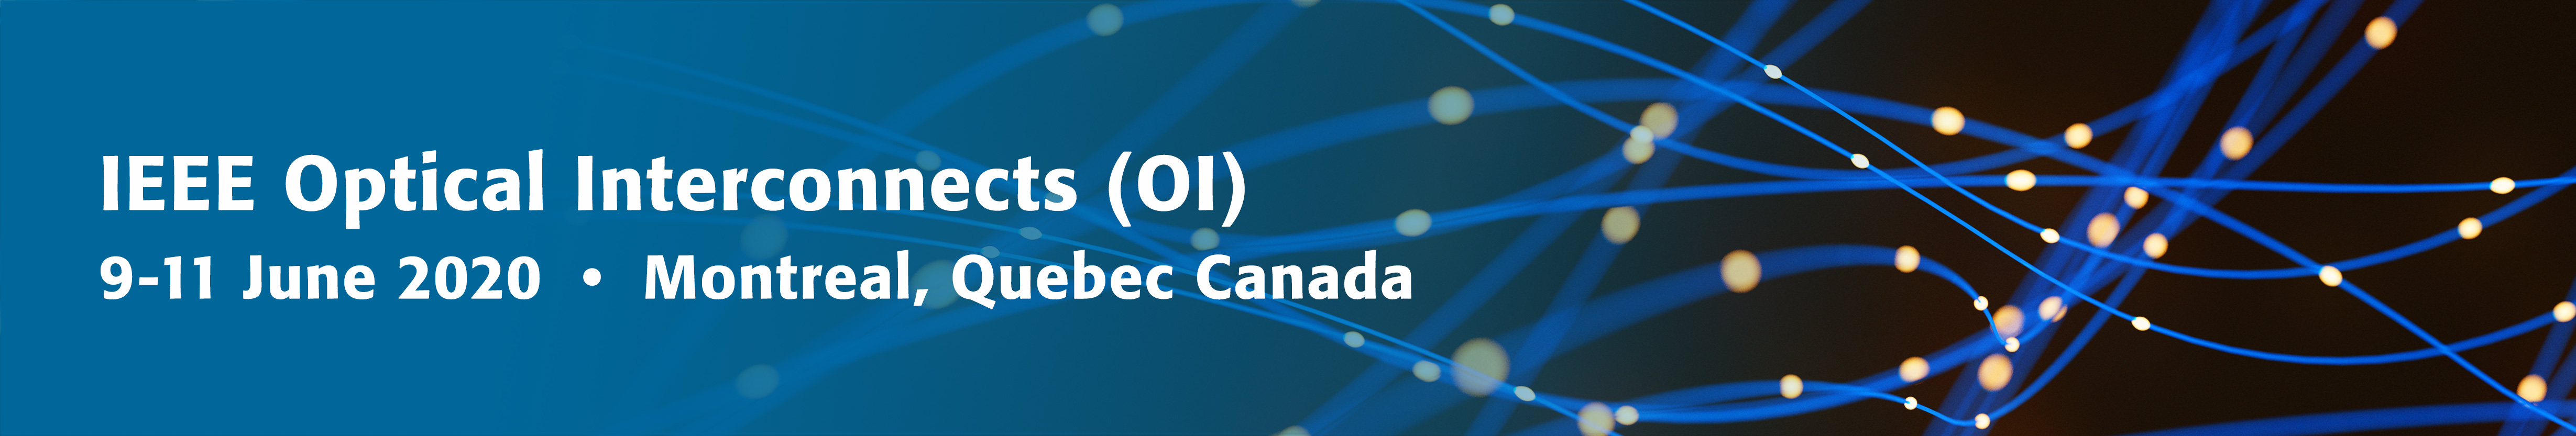 2020 IEEE Optical Interconnects Conference (OI)